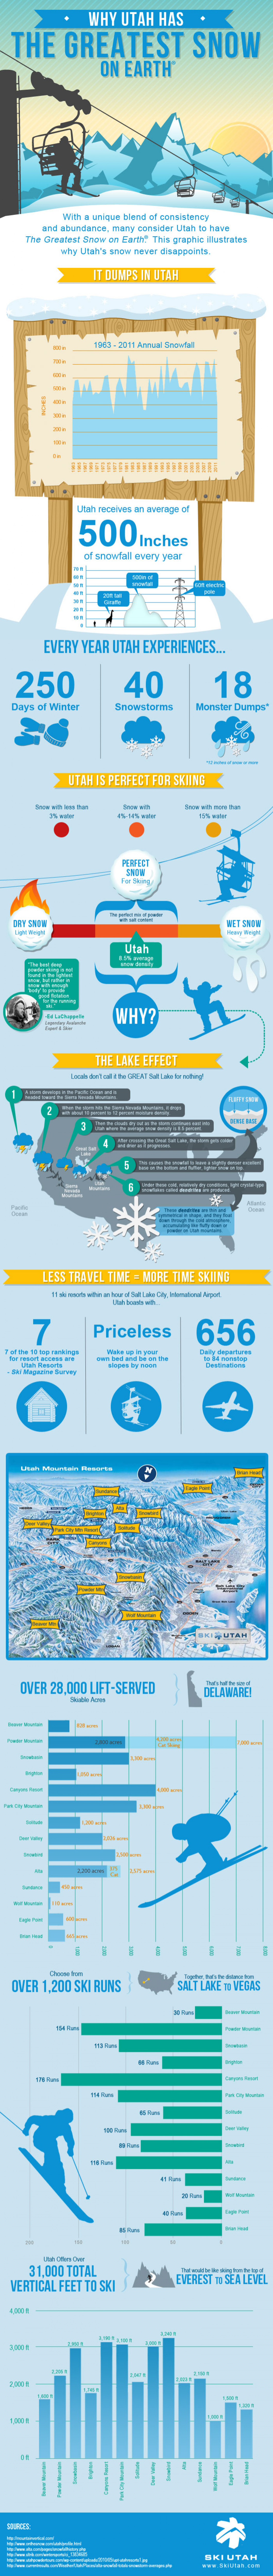 Why Utah has the greatest snow on earth Infographic